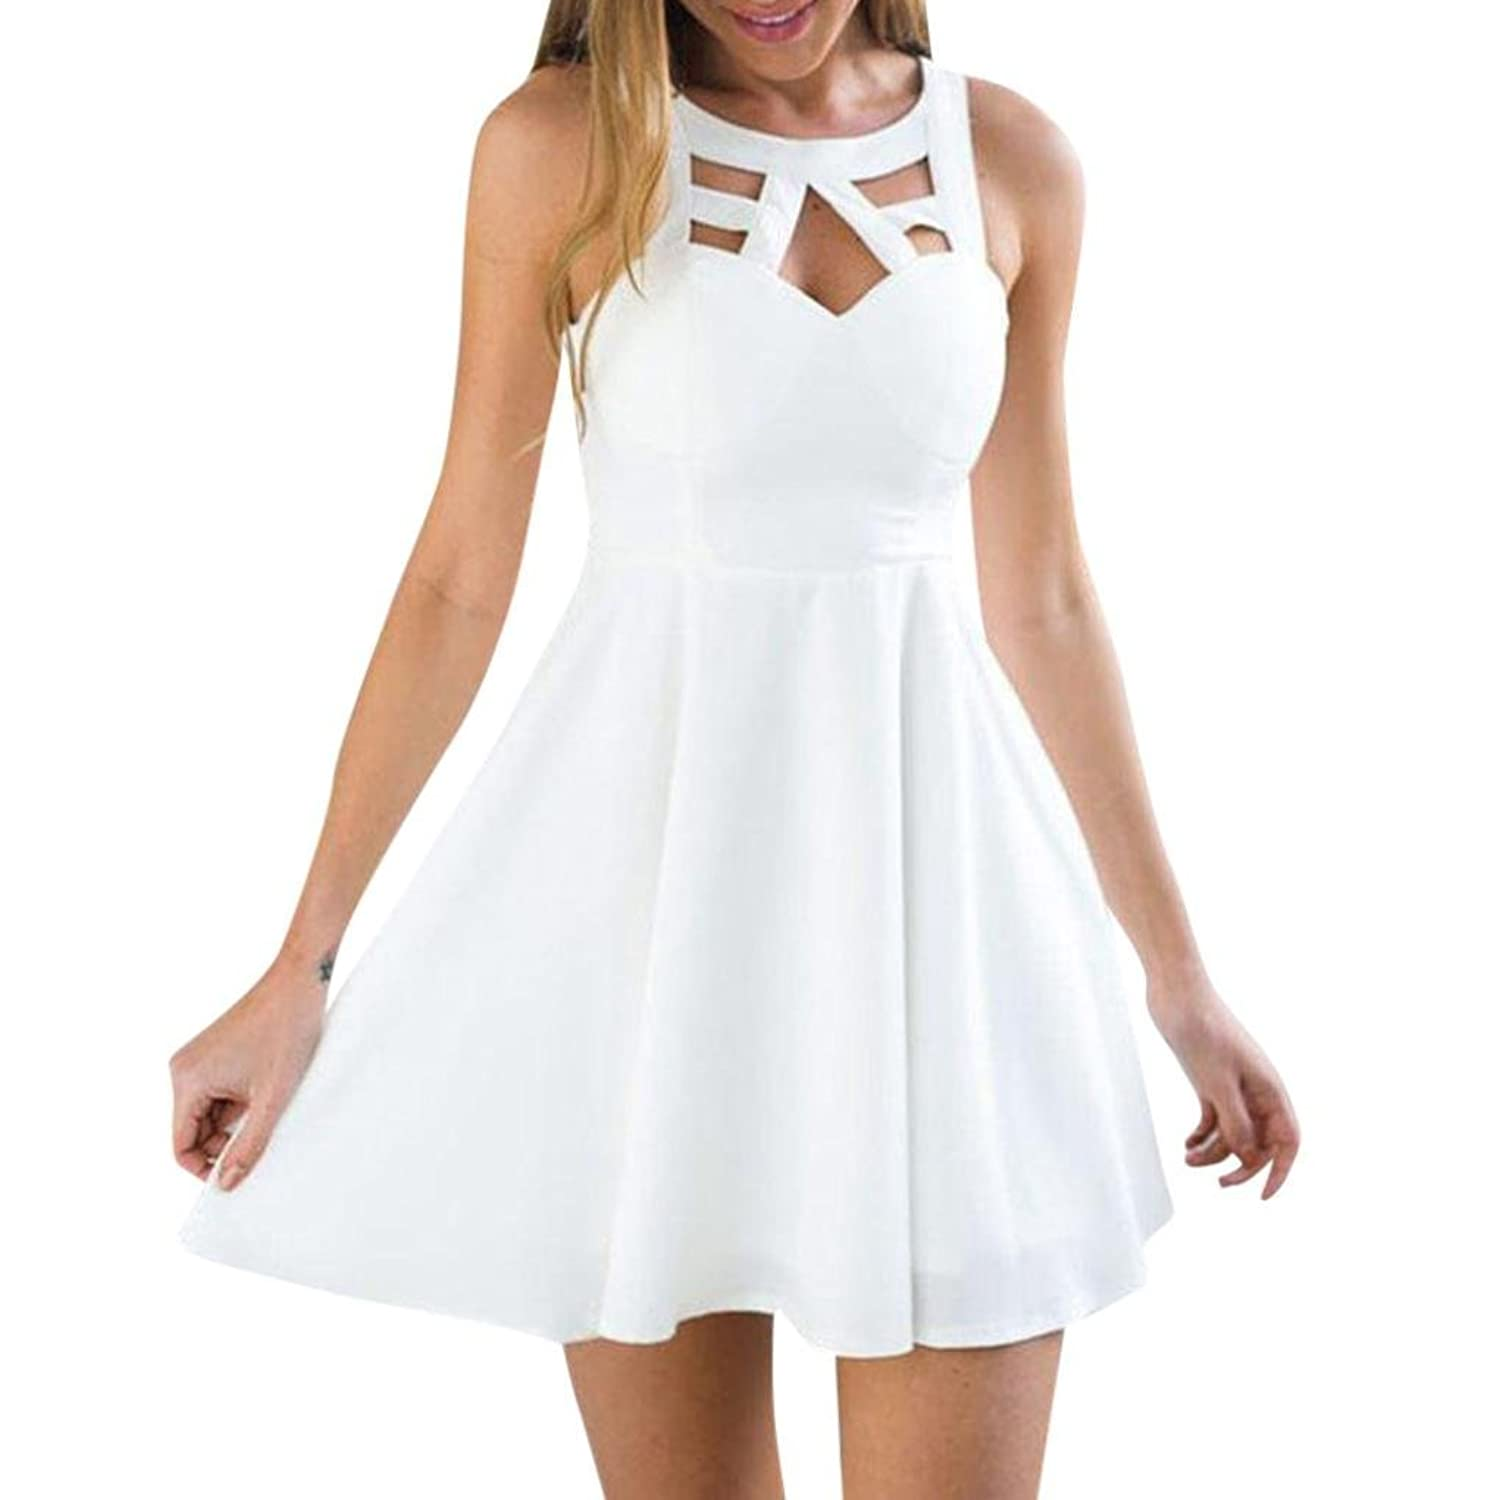 832f68dc0c8 Top1  Clearance! Women Summer Mini Dress Cute Sweet Cutwork Back Lace  Splice Sleeveless Evening Party Beach Sundress